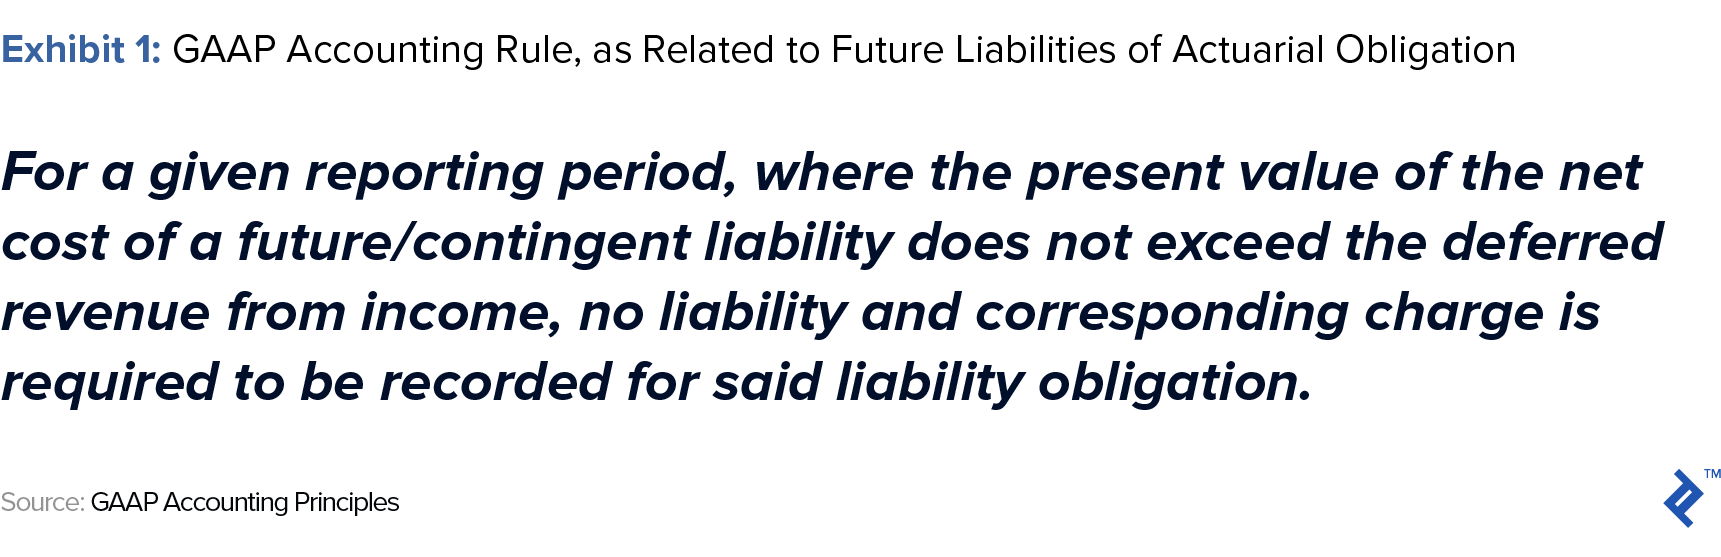 gaap accounting rule, as related to future liabilities of actuarial obligation